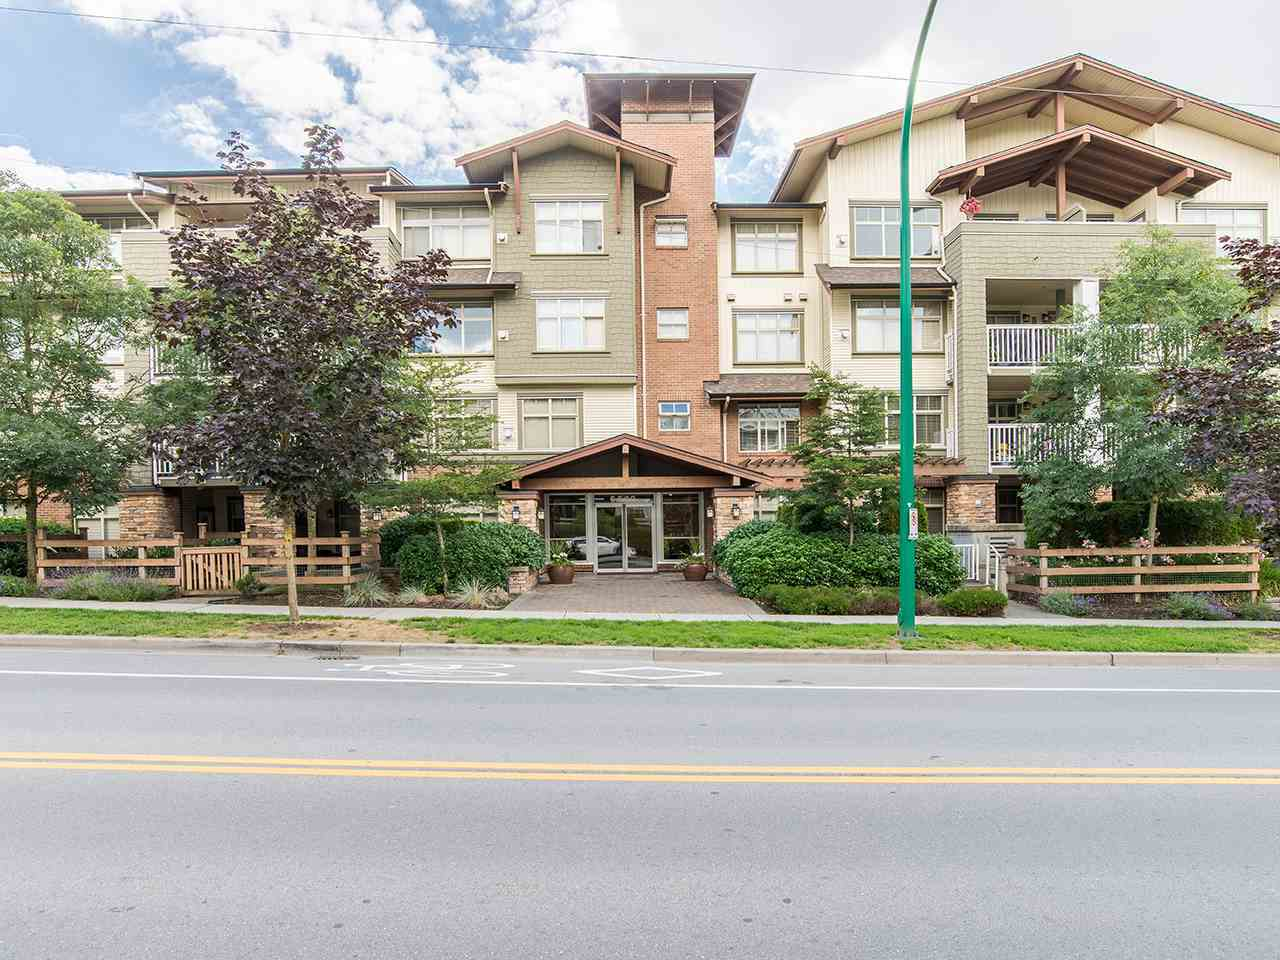 Main Photo: 316 6500 194 STREET in Surrey: Clayton Condo for sale (Cloverdale)  : MLS®# R2118450